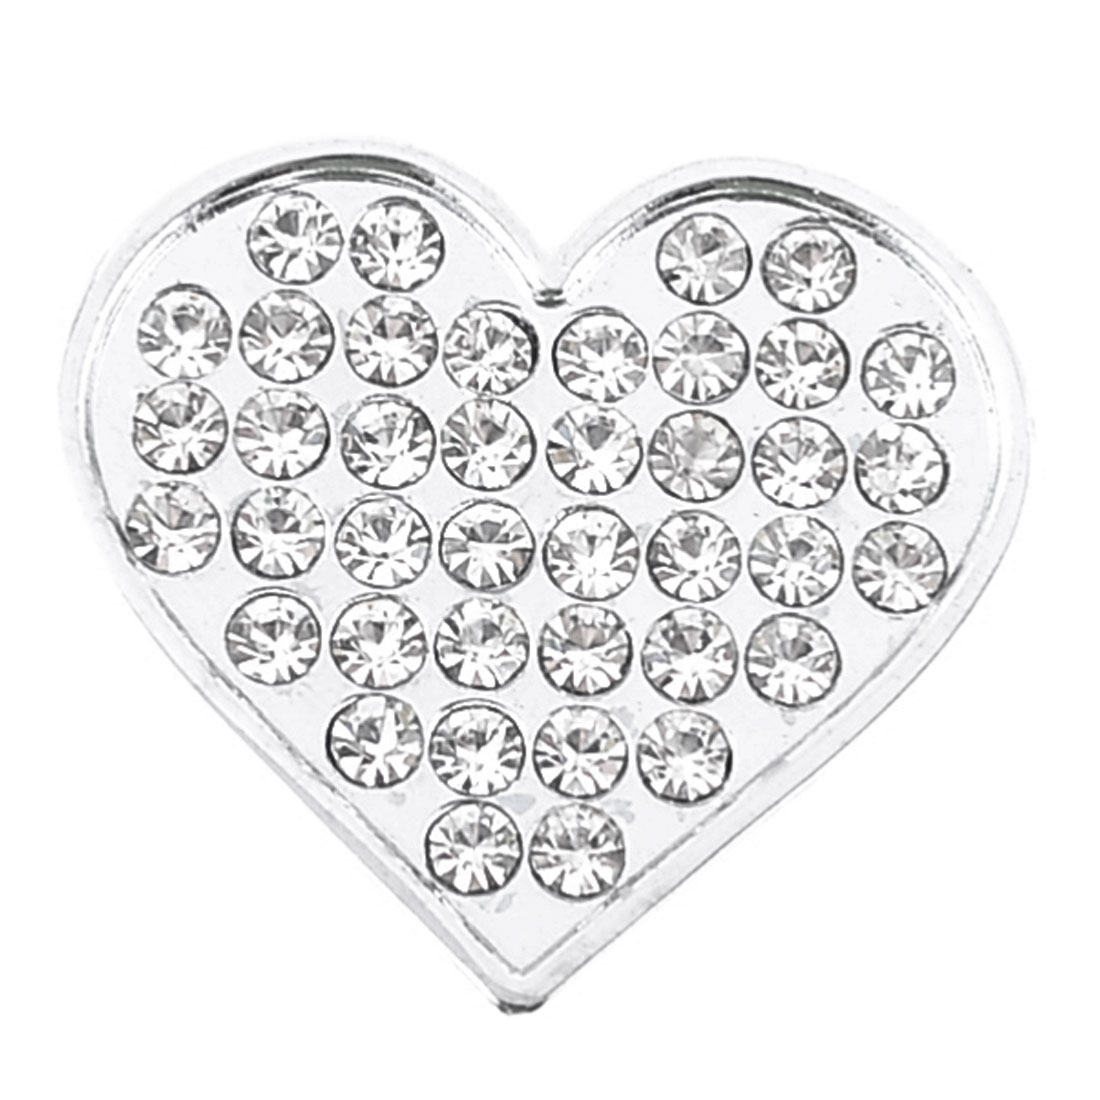 Bling Rhinestones Silver Tone Heart Shape Design 3D Emblem Car Sticker